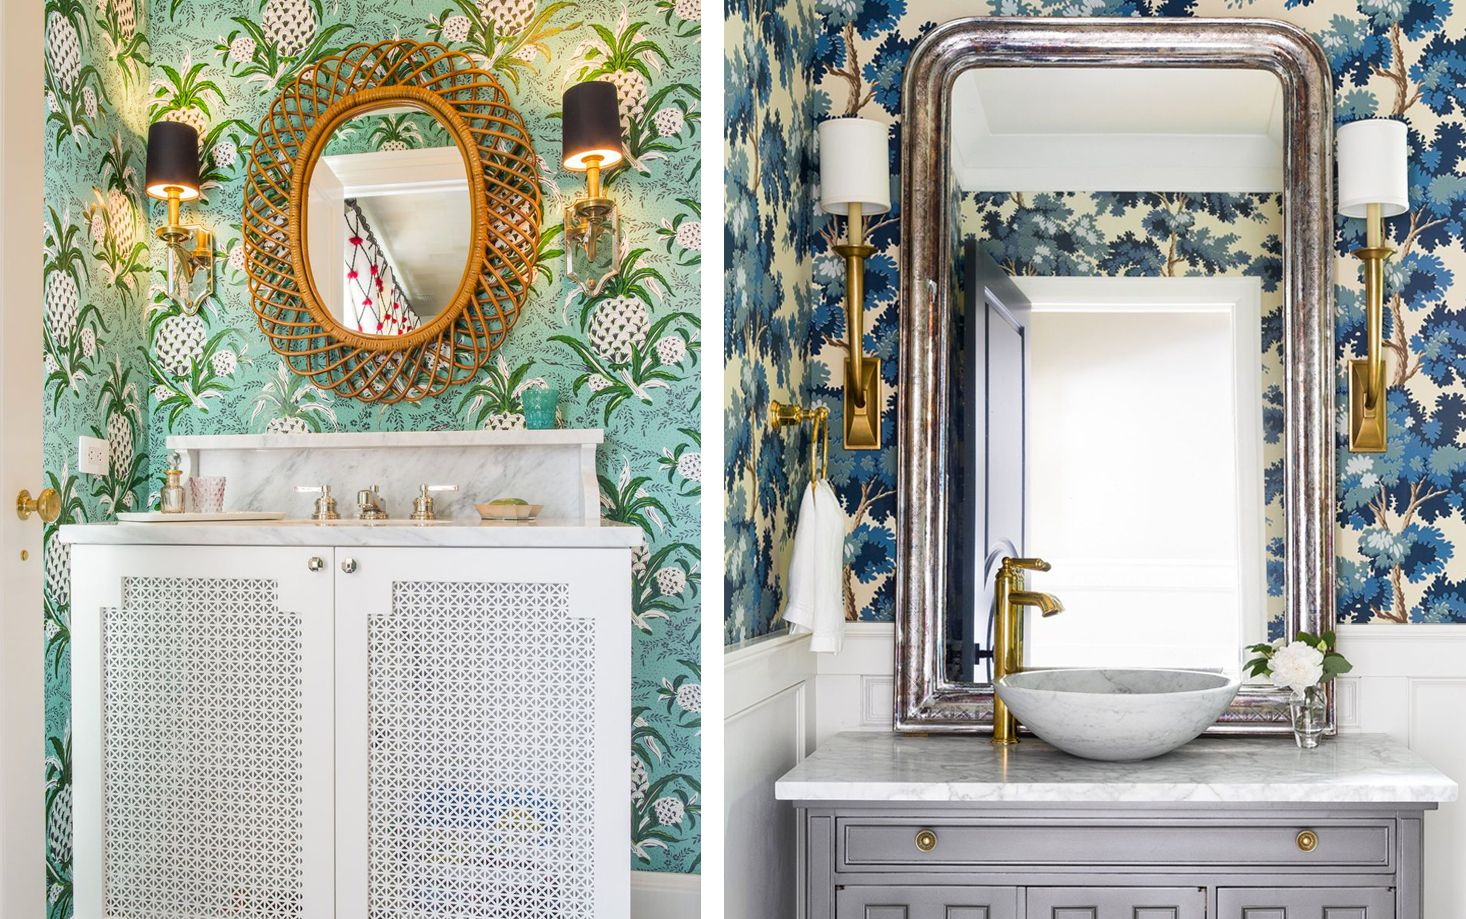 11 Whimsical Powder Rooms - Powder Room Design Ideas